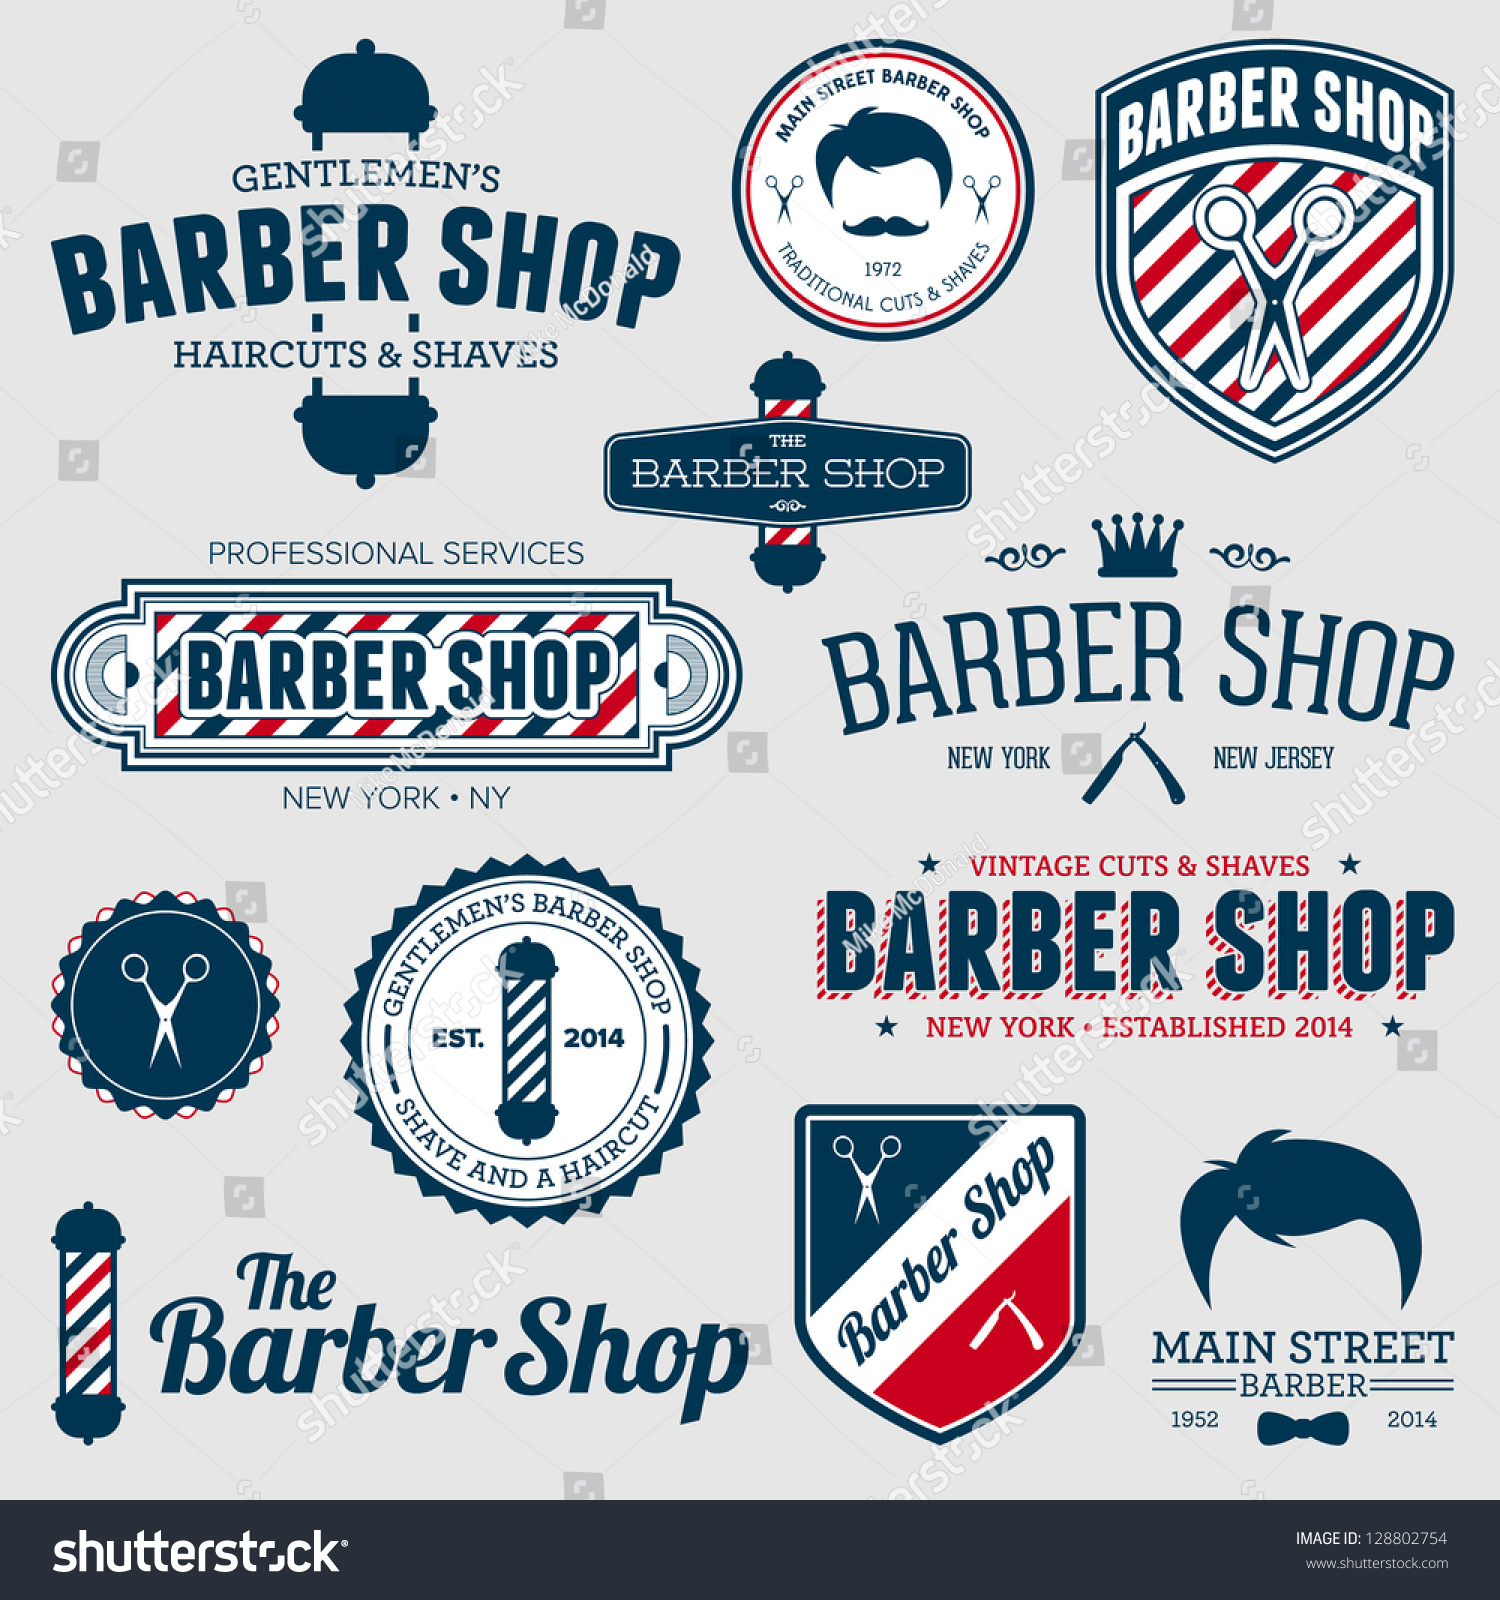 Clip art vector of vintage barber shop logo graphics and icon vector -  Vectors Illustrations Footage Music Set Of Vintage Barber Shop Logo Graphics And Icons